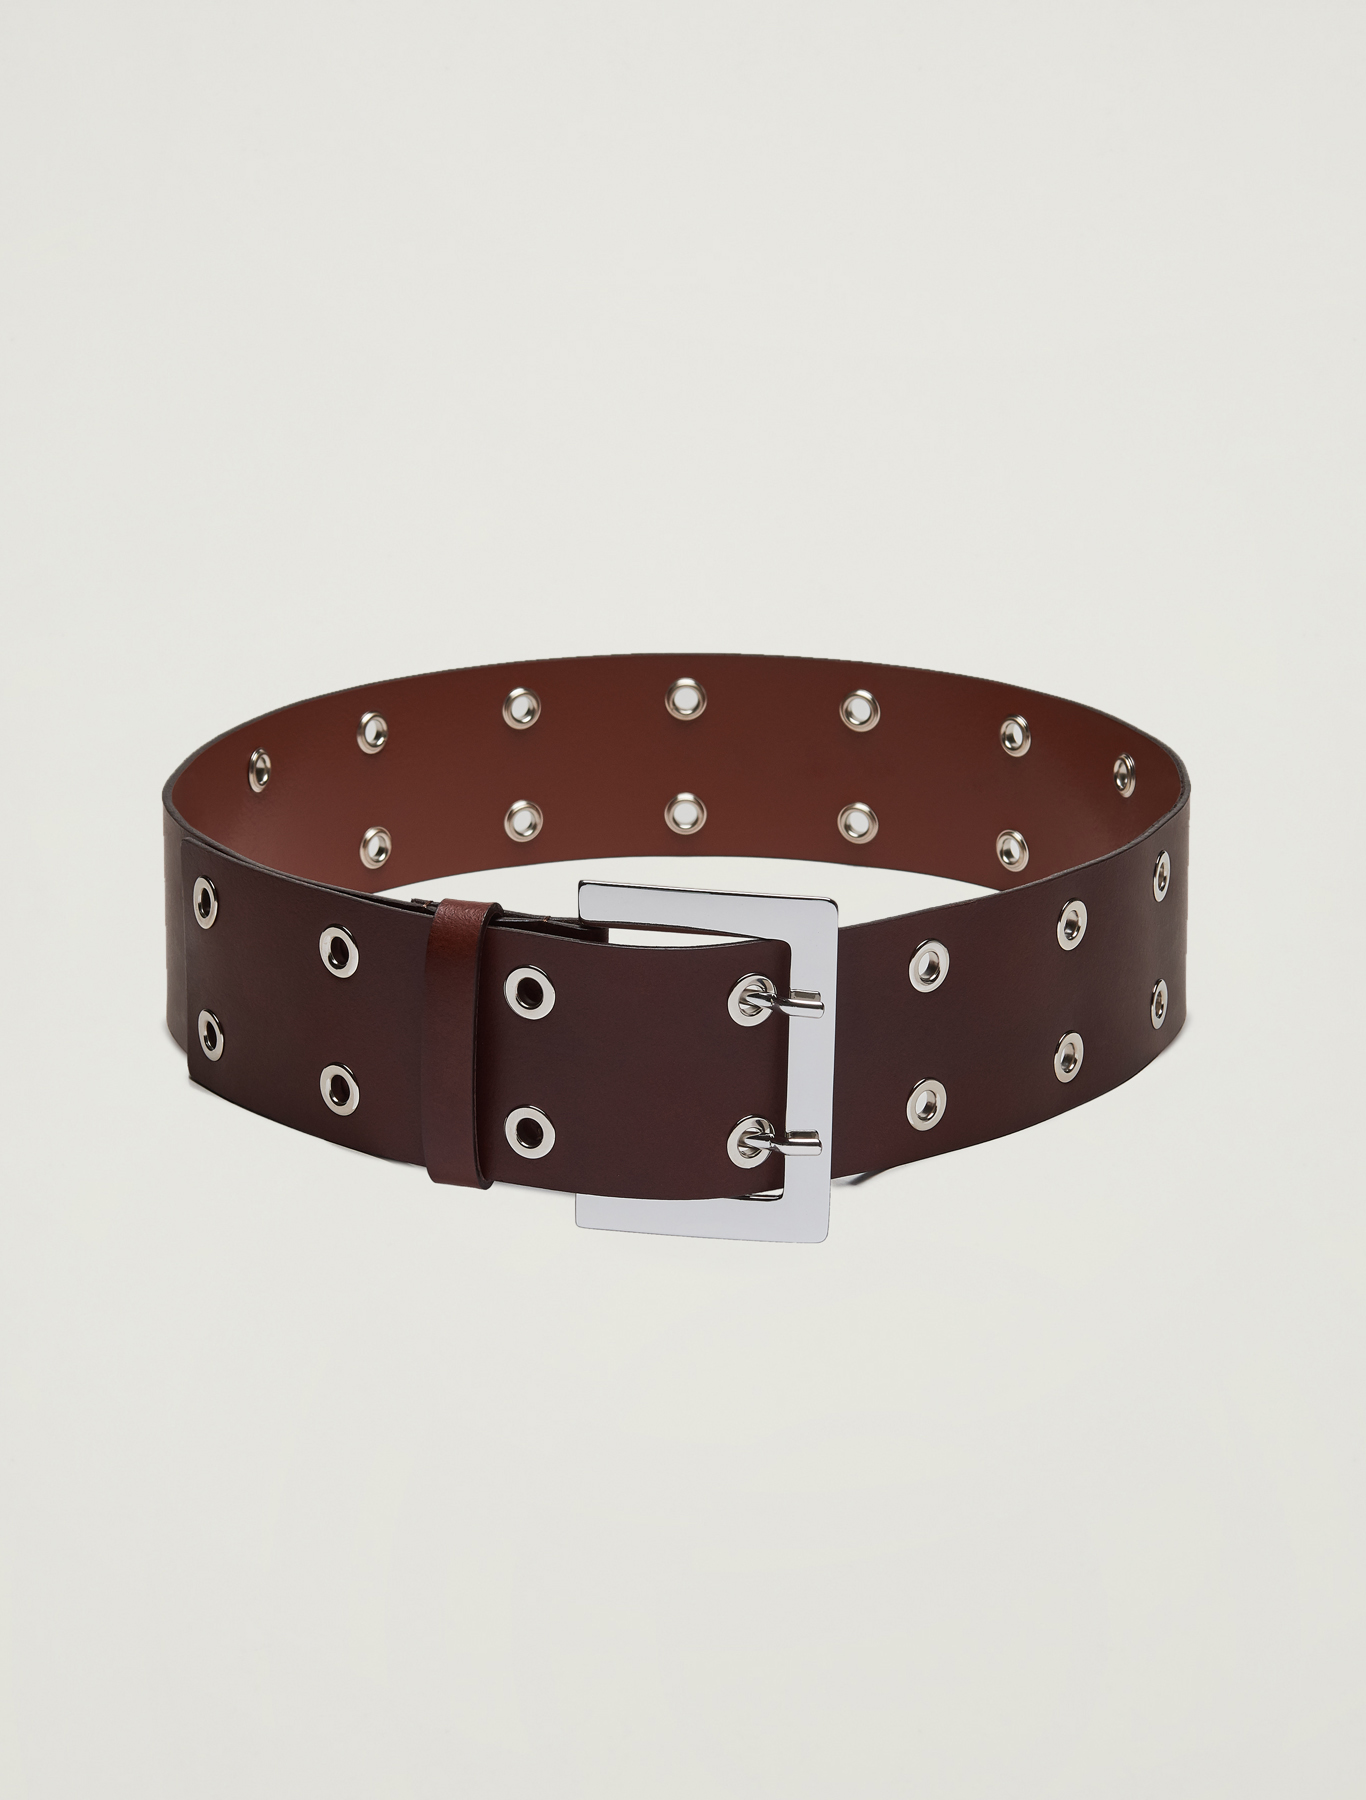 Wide studded belt - brown - pennyblack